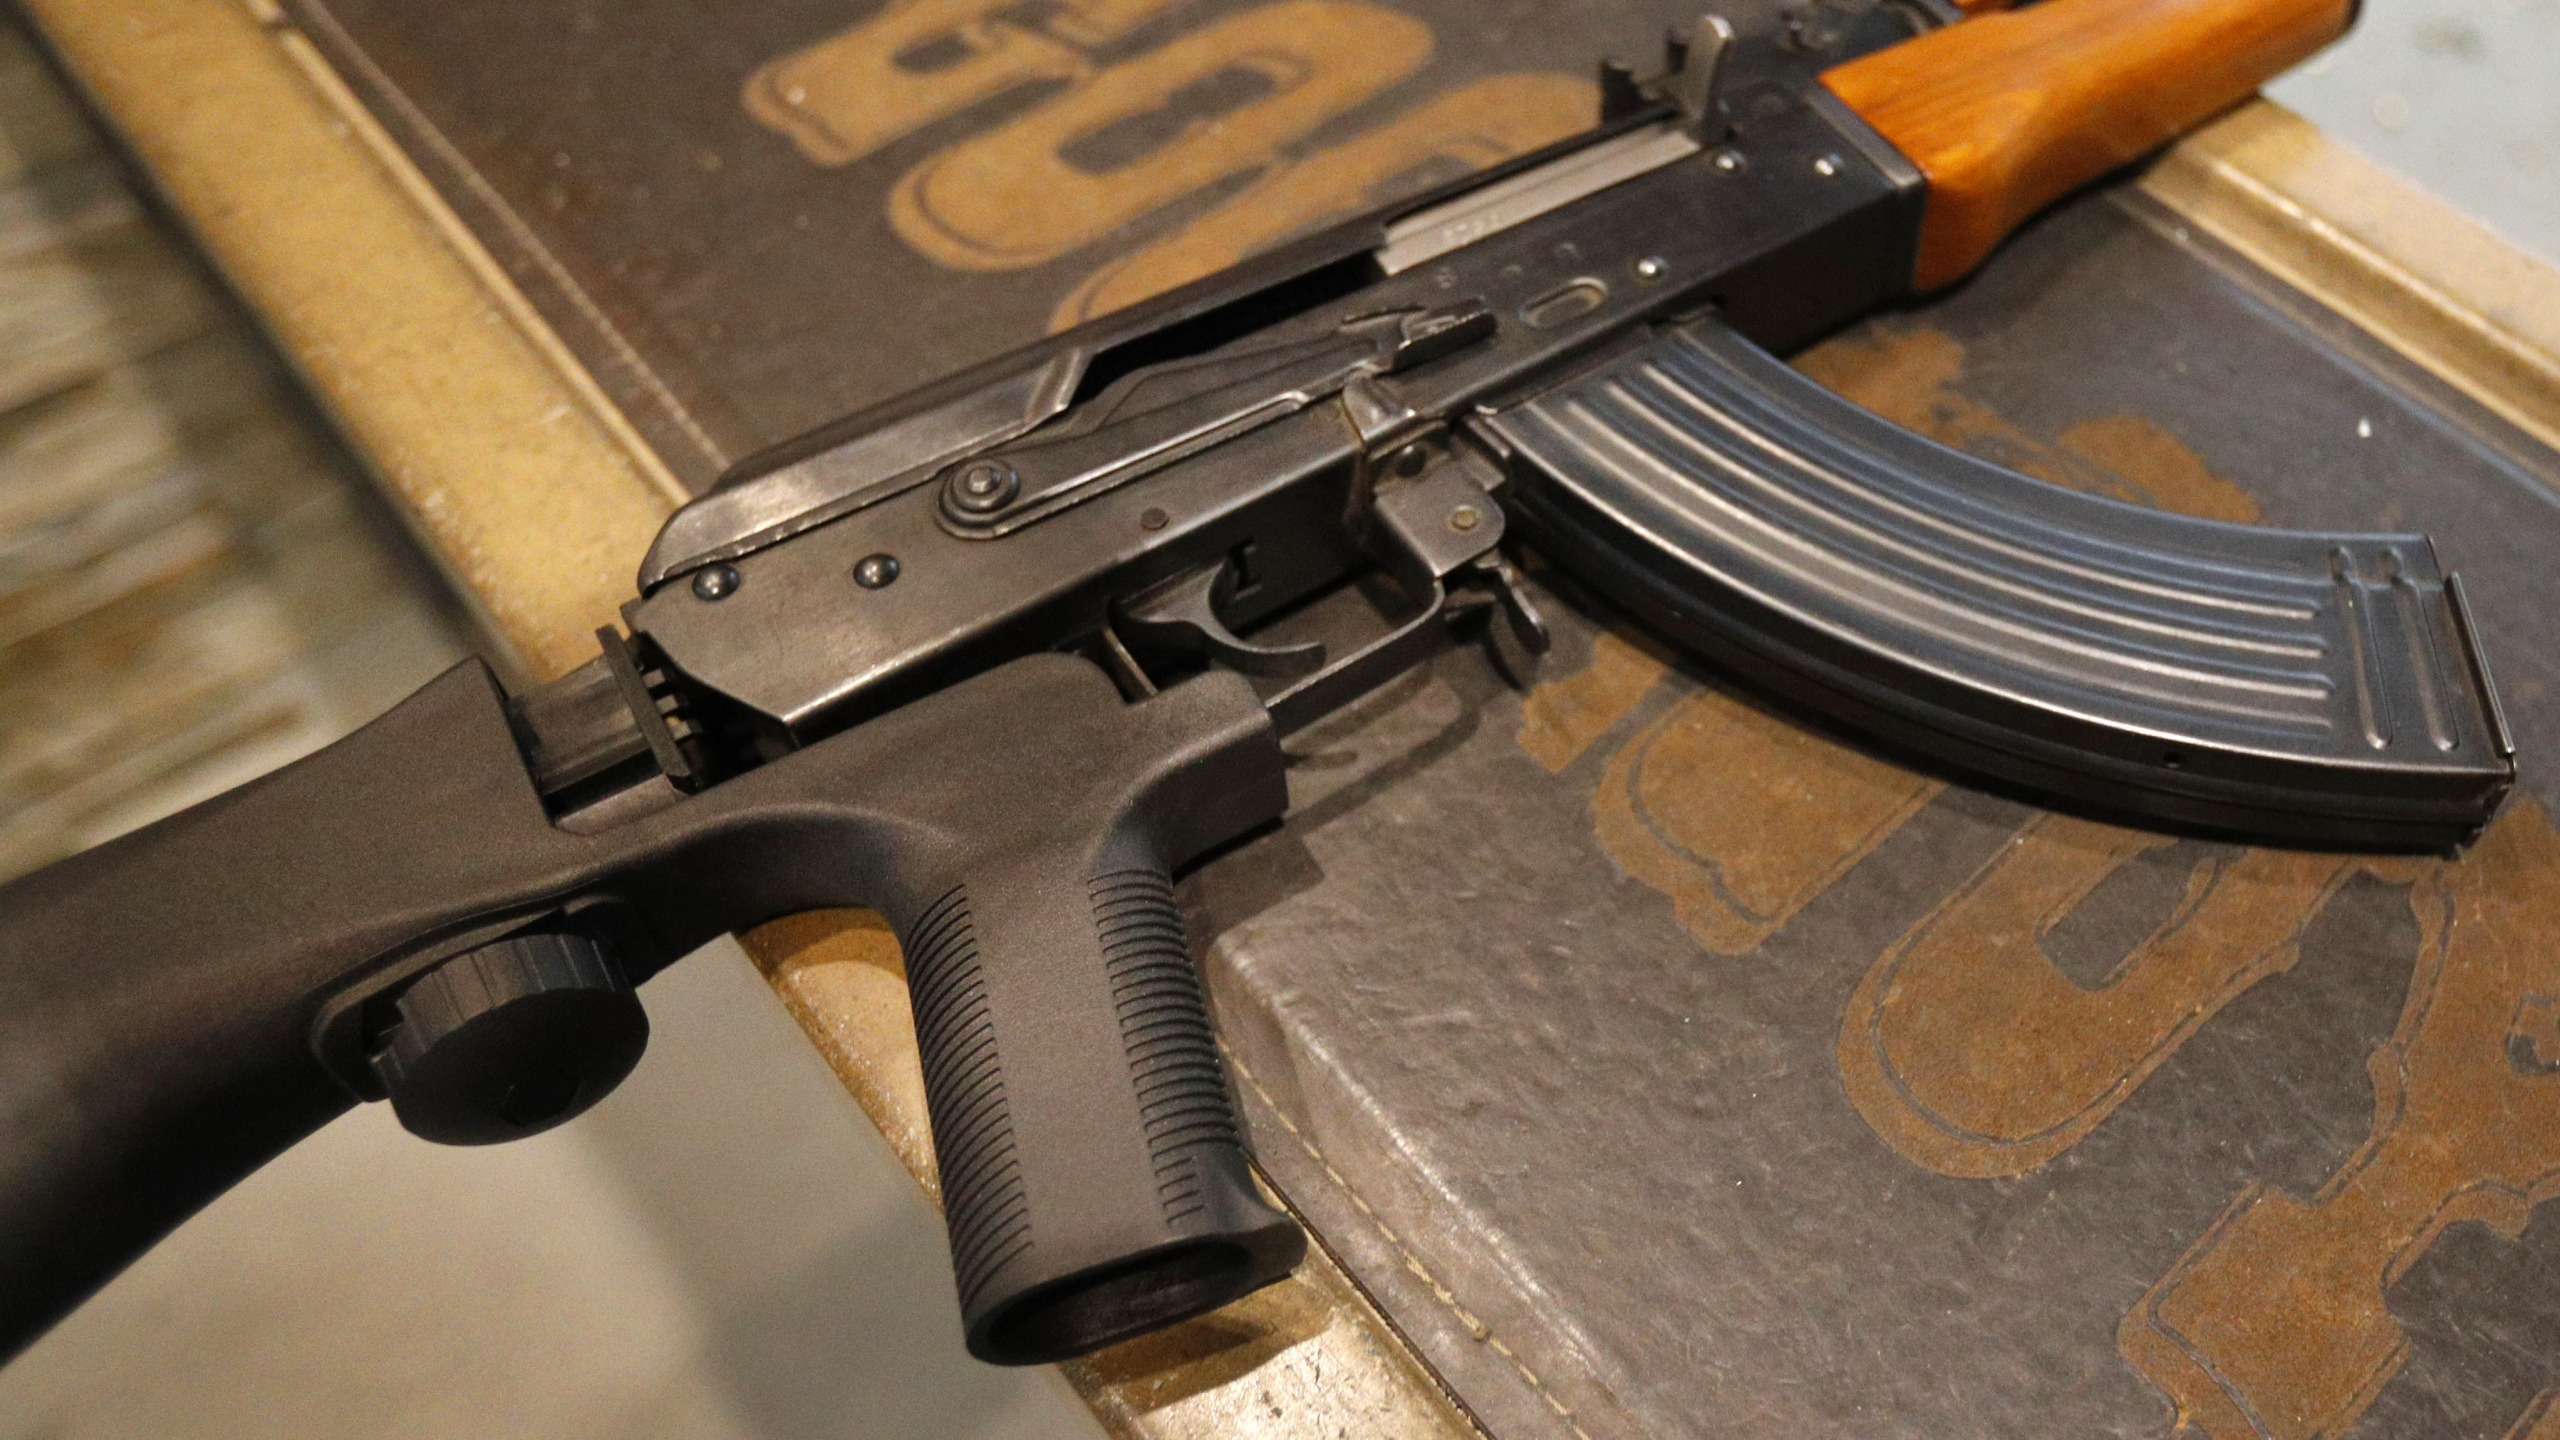 A bump stock is installed on an AK-47 with a 30 round magazine at Good Guys Gun and Range on February 21, 2018 in Orem, Utah. (Credit: George Frey/Getty Images)